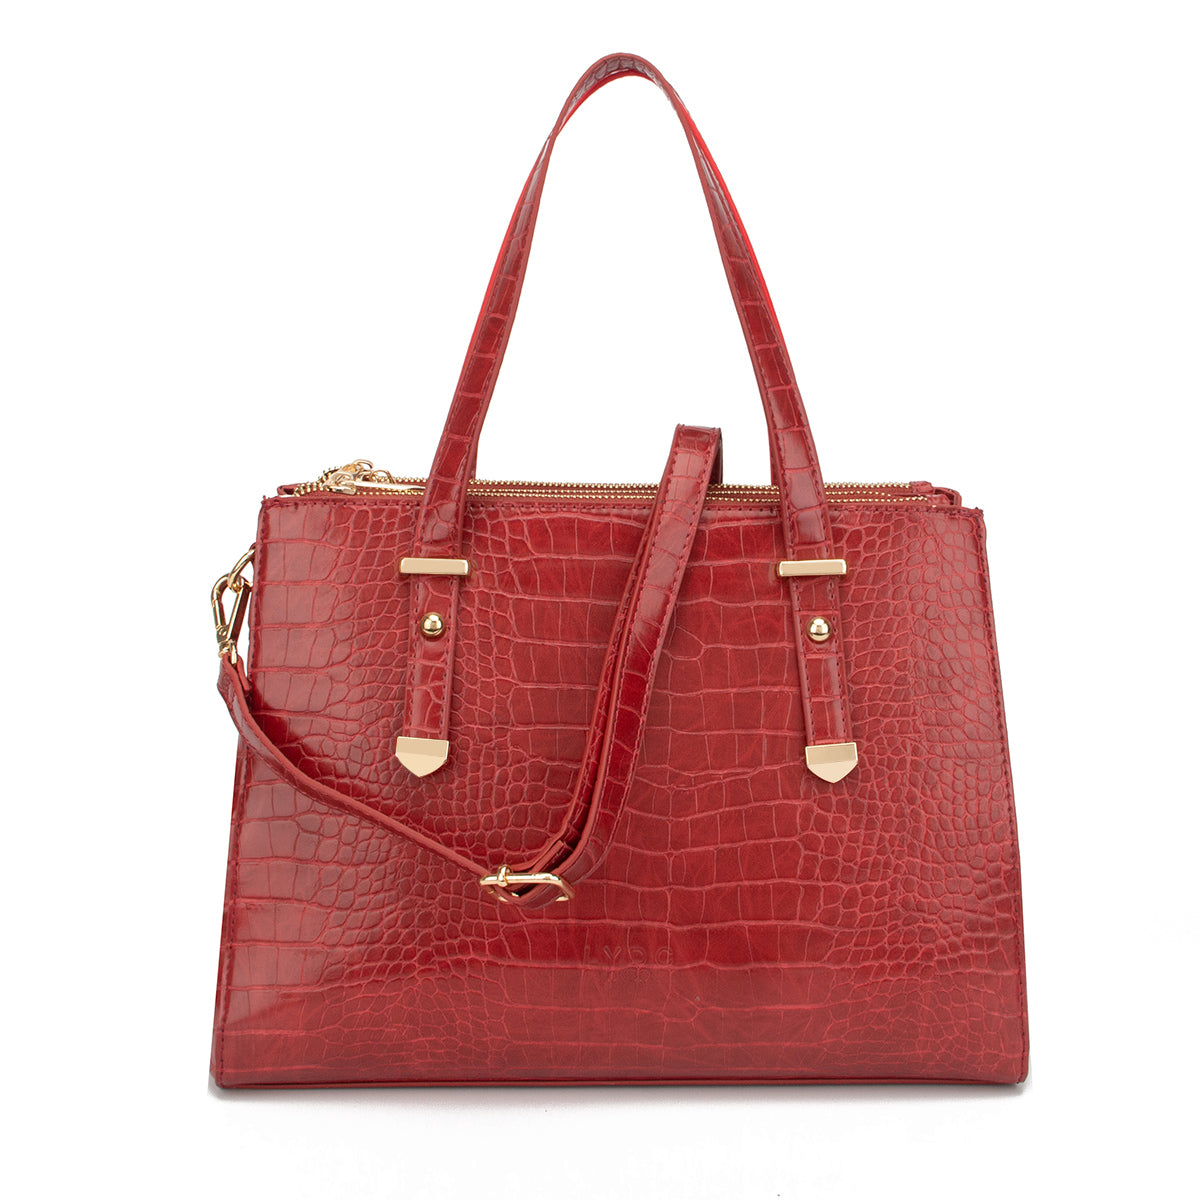 LYDC Large Shoulder Bag Croc Style with Top handles